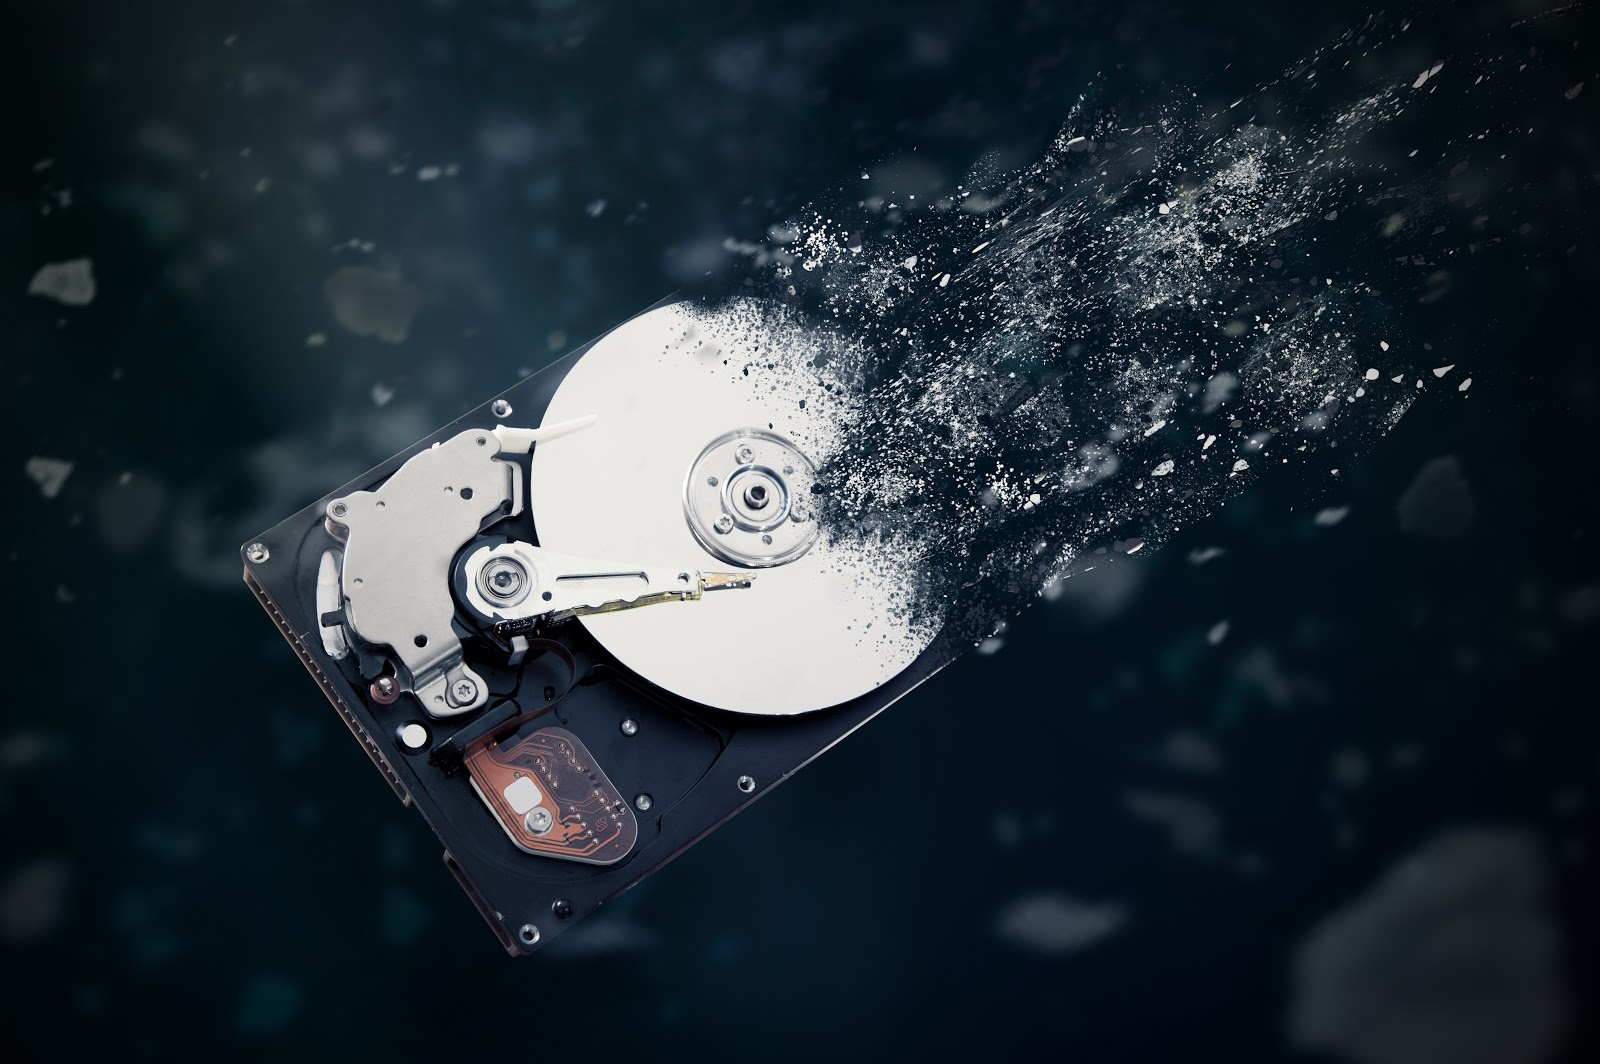 hard drive being destroyed